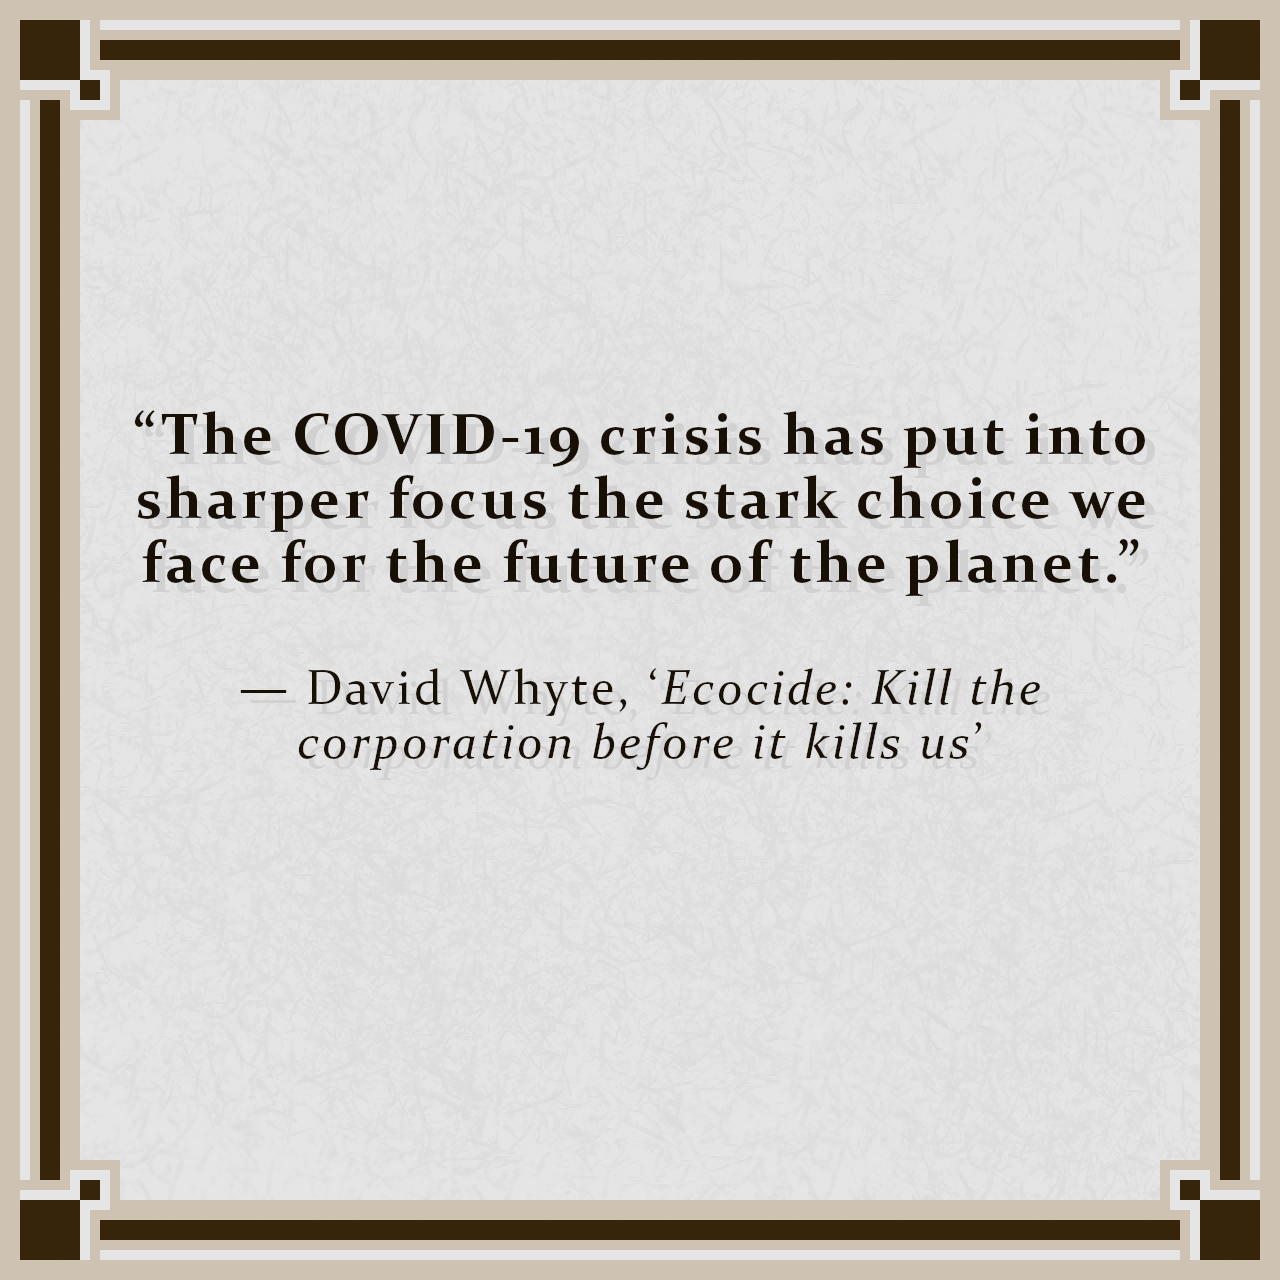 """""""The COVID-19 crisis has put into sharper focus the stark choice we face for the future of the planet."""" — David Whyte, 'Ecocide: Kill the corporation before it kills us'"""